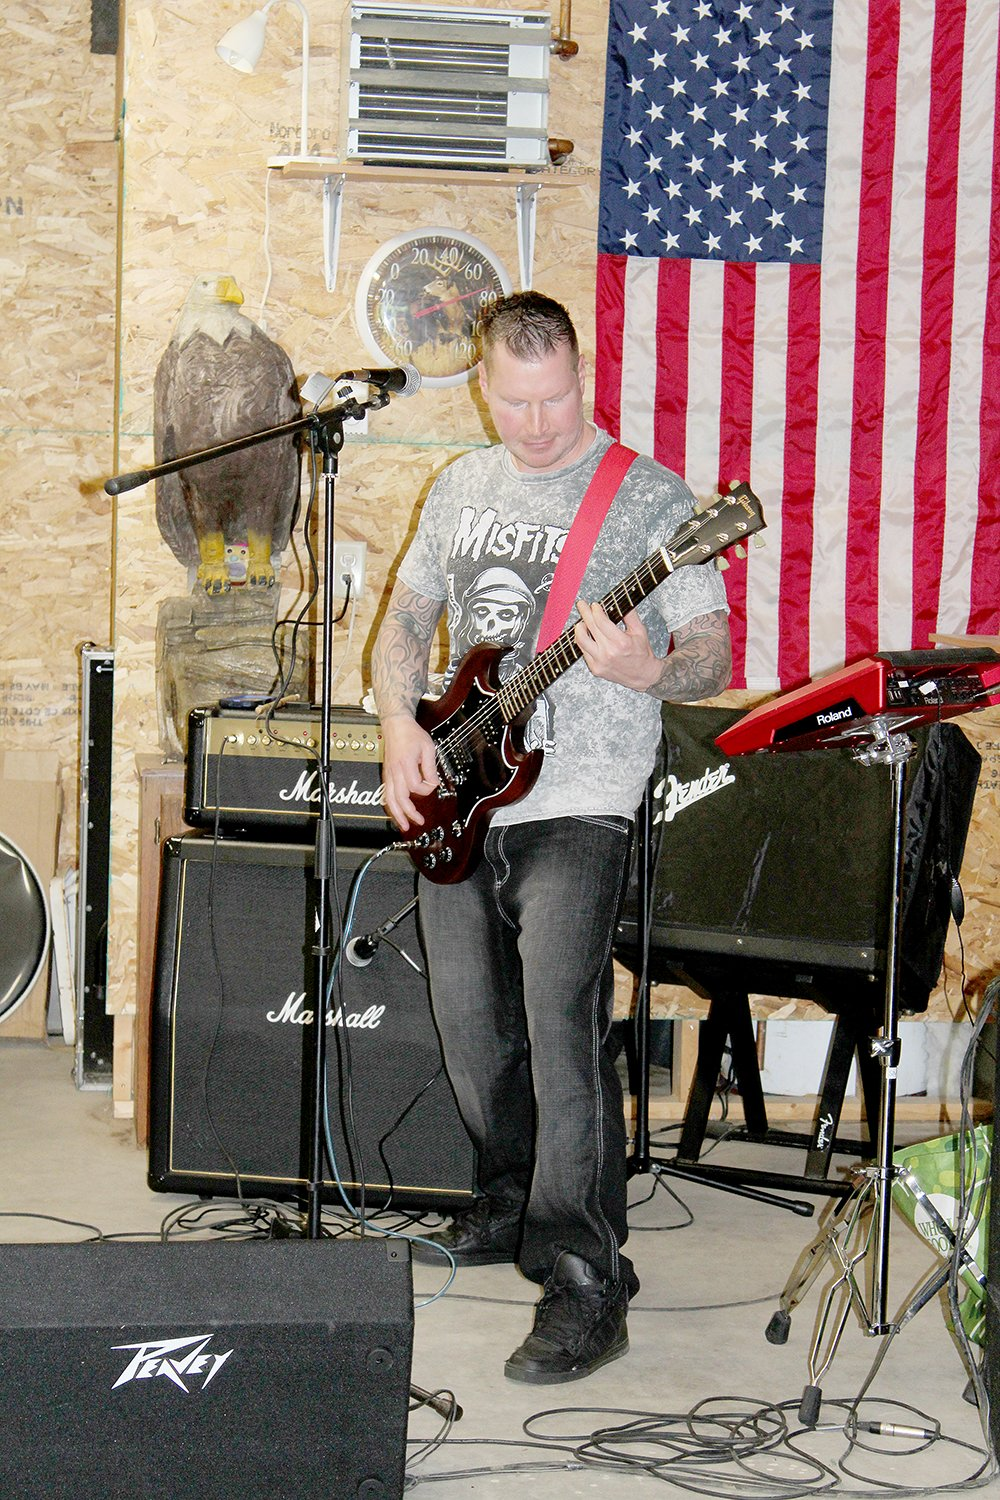 Chaz Wagner of War Bonnet plays rhythm guitar during a rehearsal on Sunday, Aug. 4 in Cook.